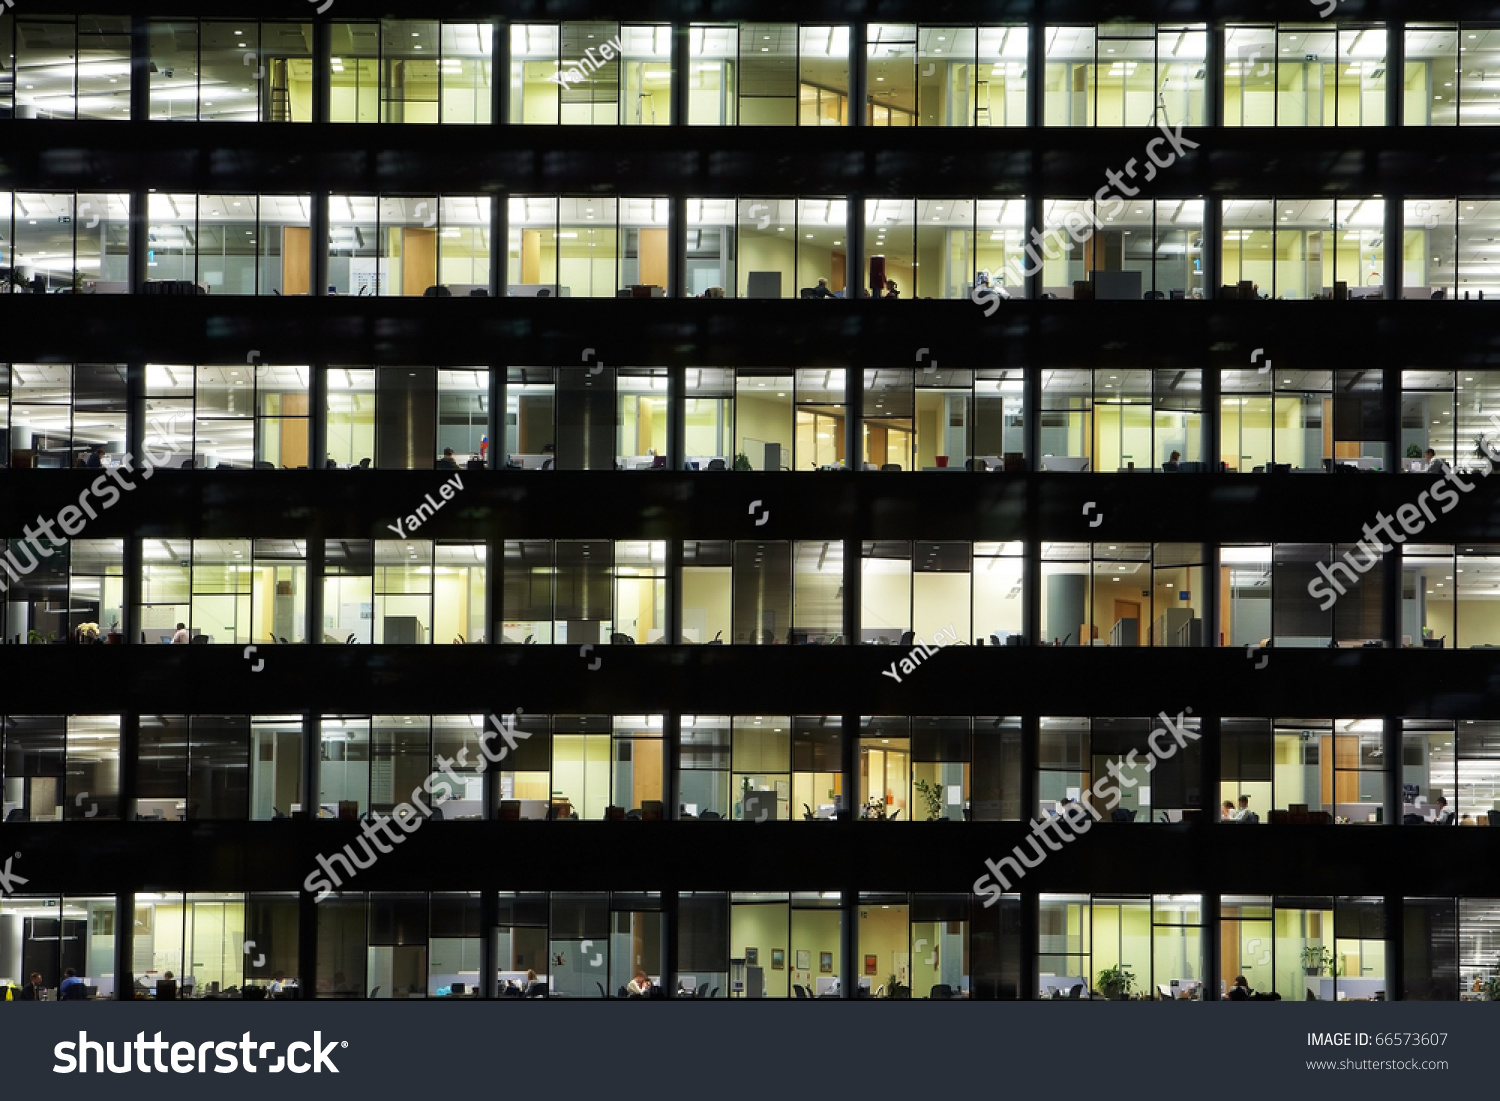 Working In A Tall Office Building At Nigth